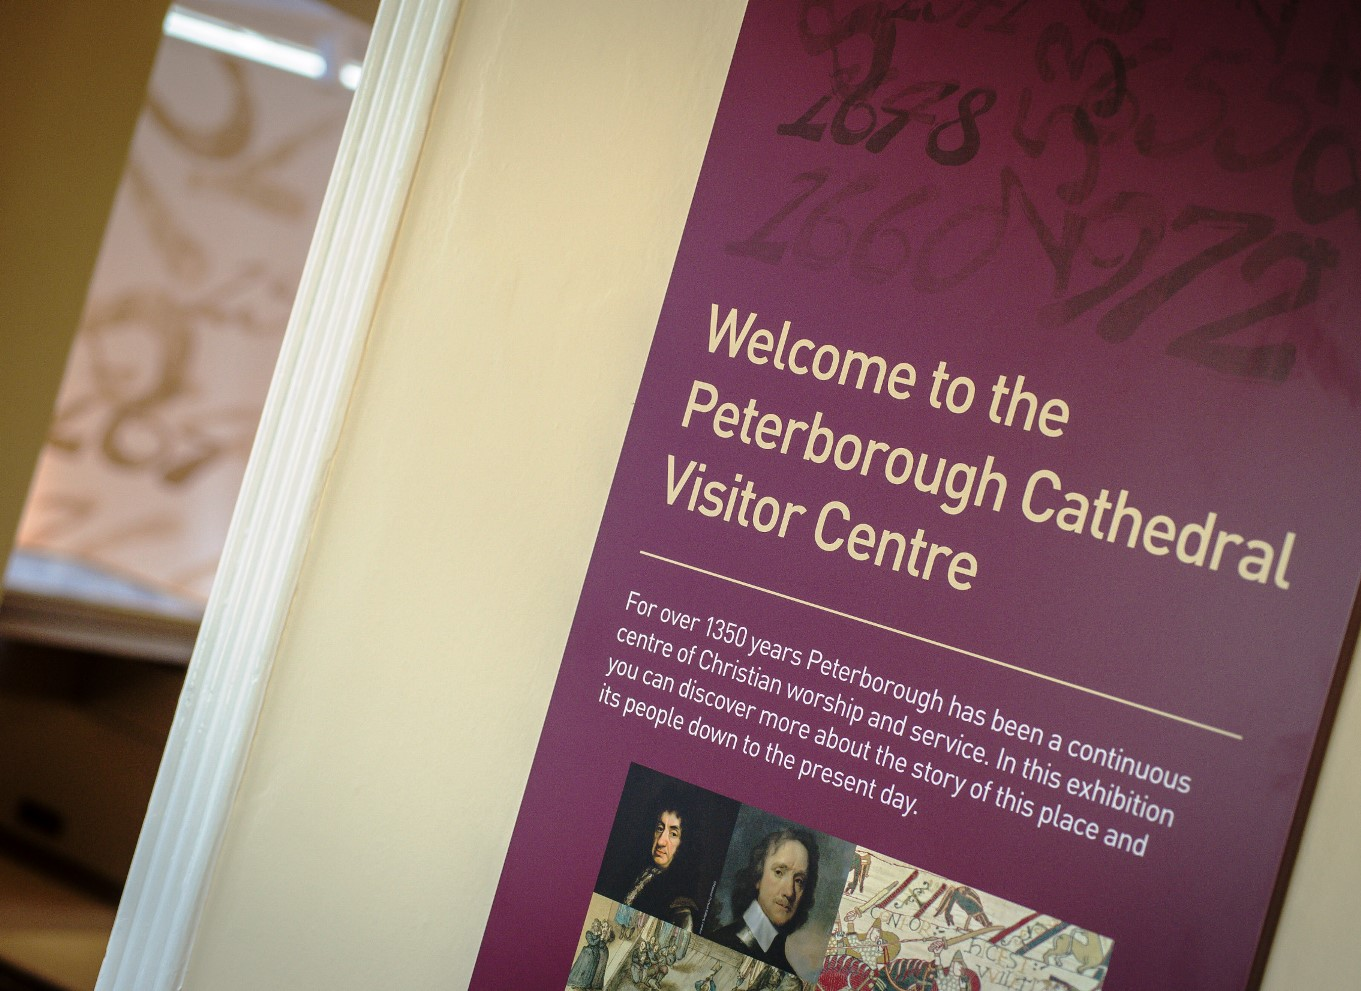 A glimpse of the entrance to the Cathedral Visitor Centre